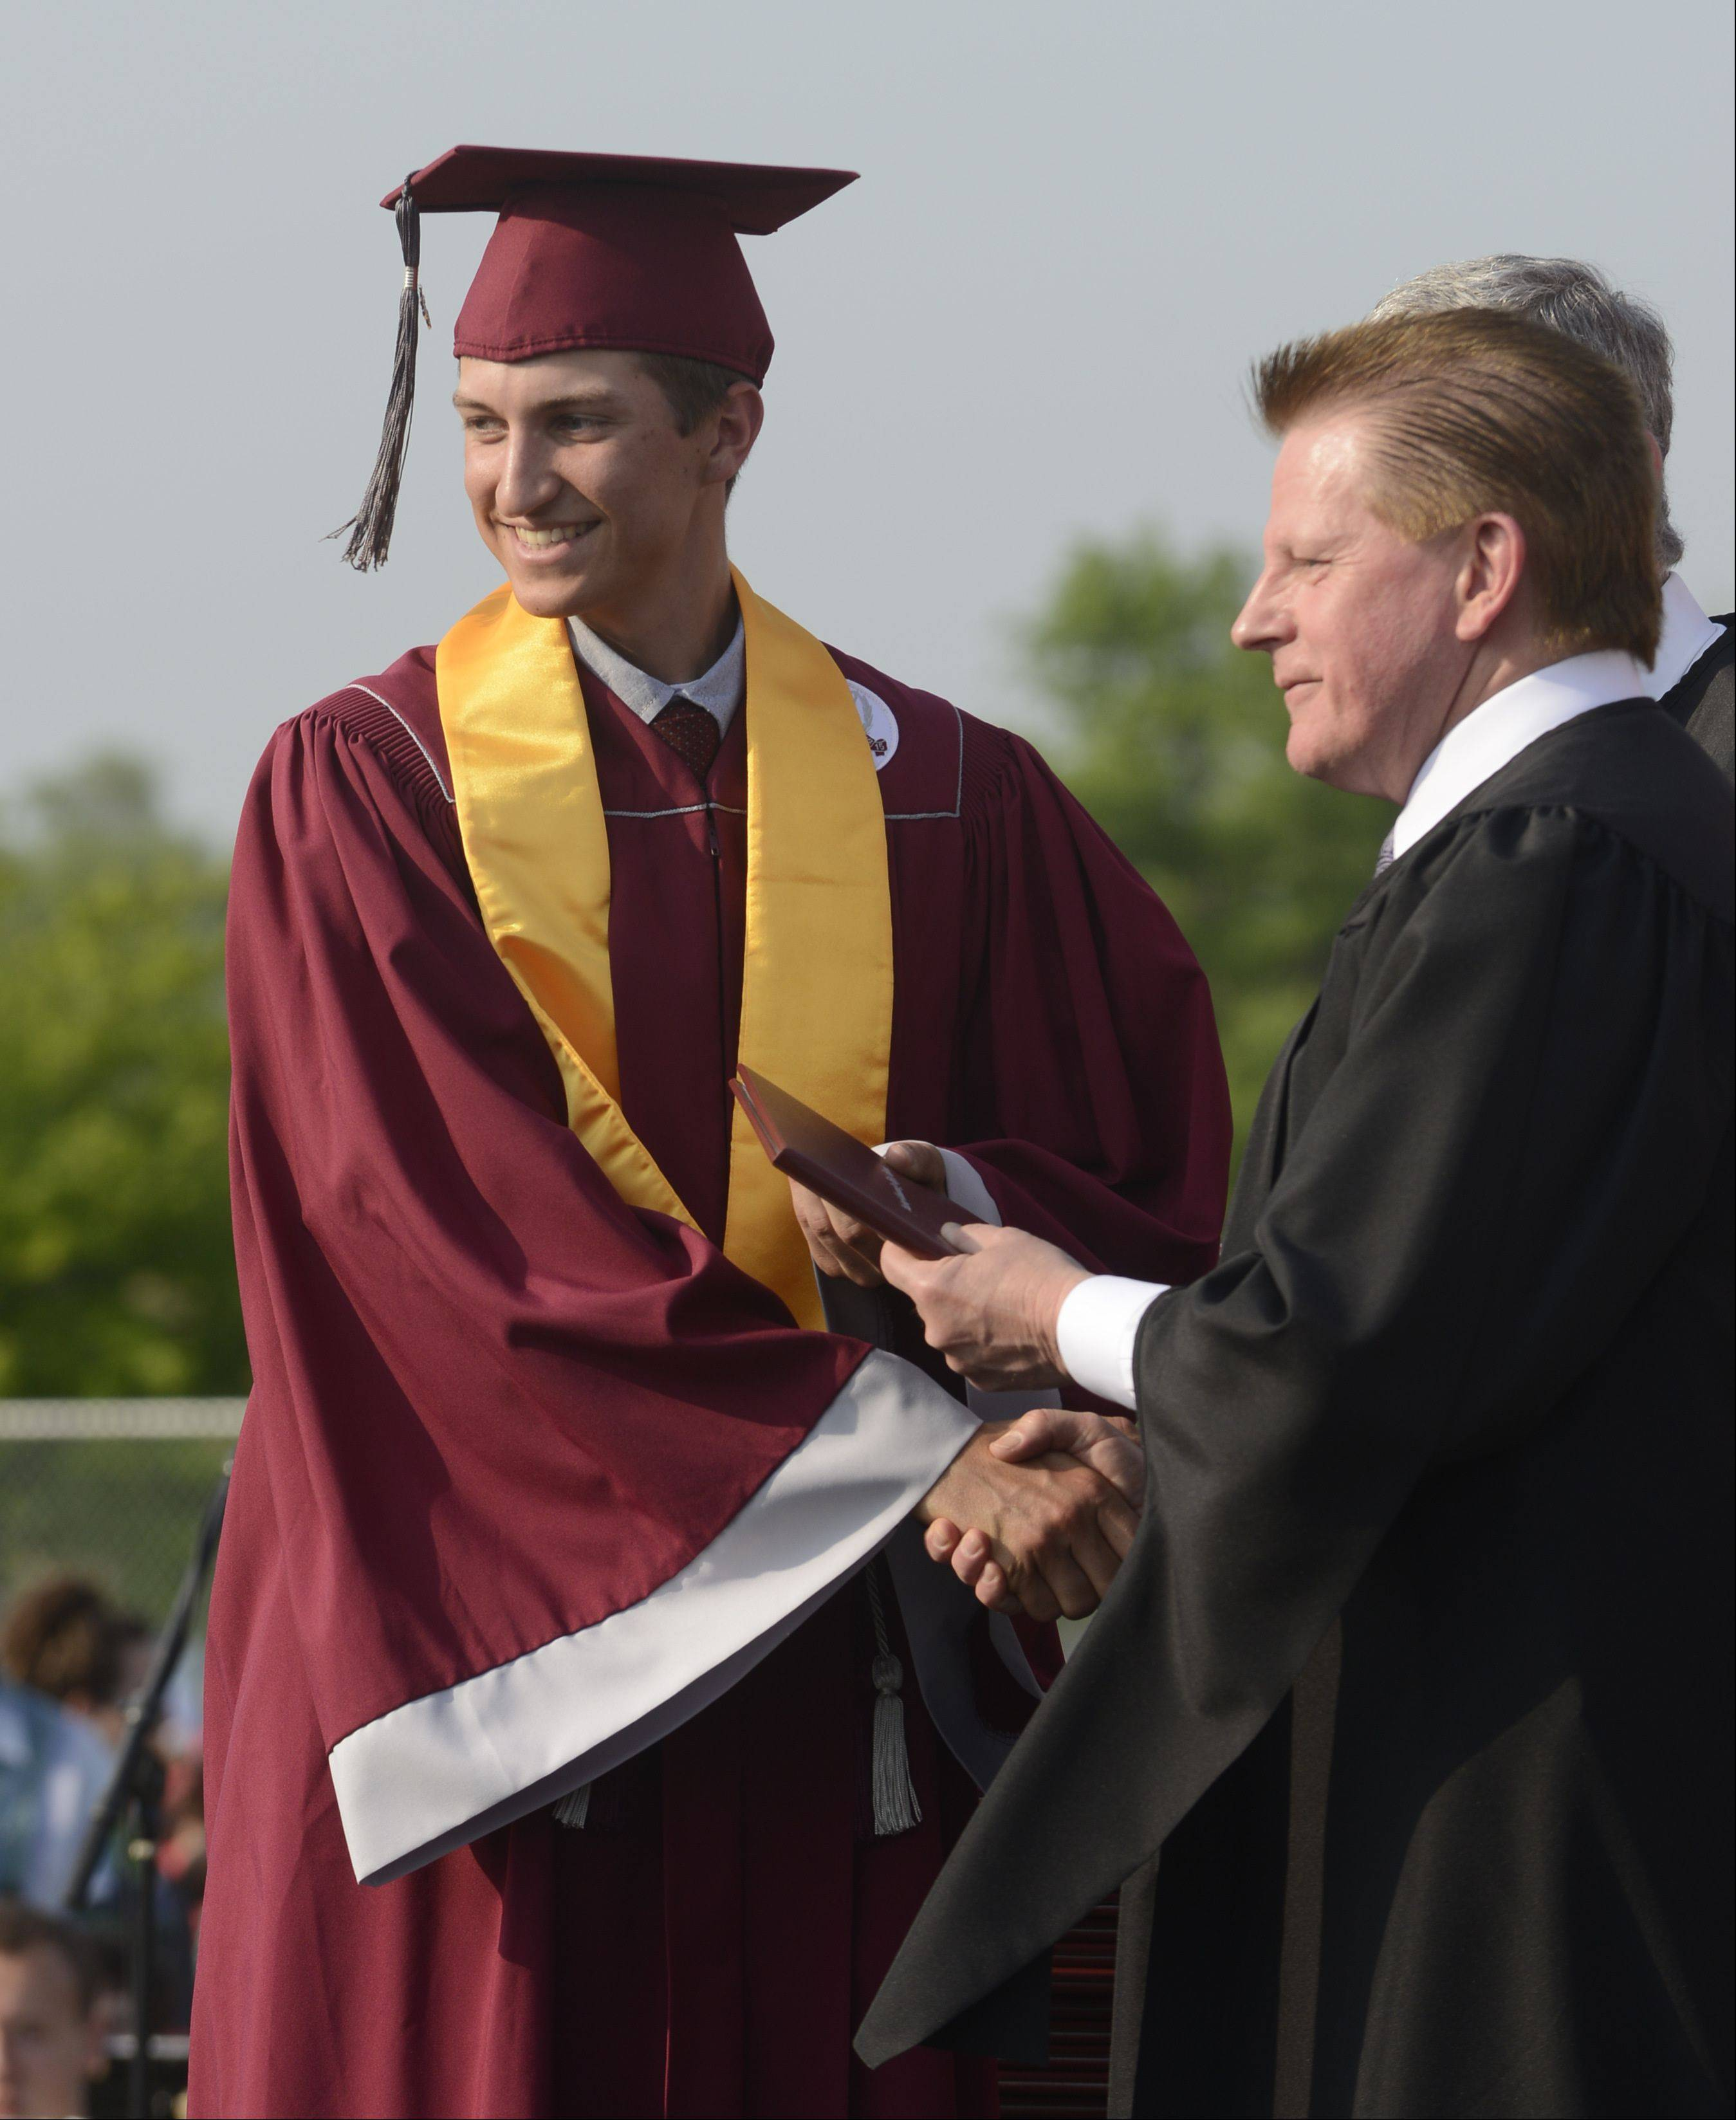 Images from the Antioch High school graduation on Sunday, May 19 in Antioch.